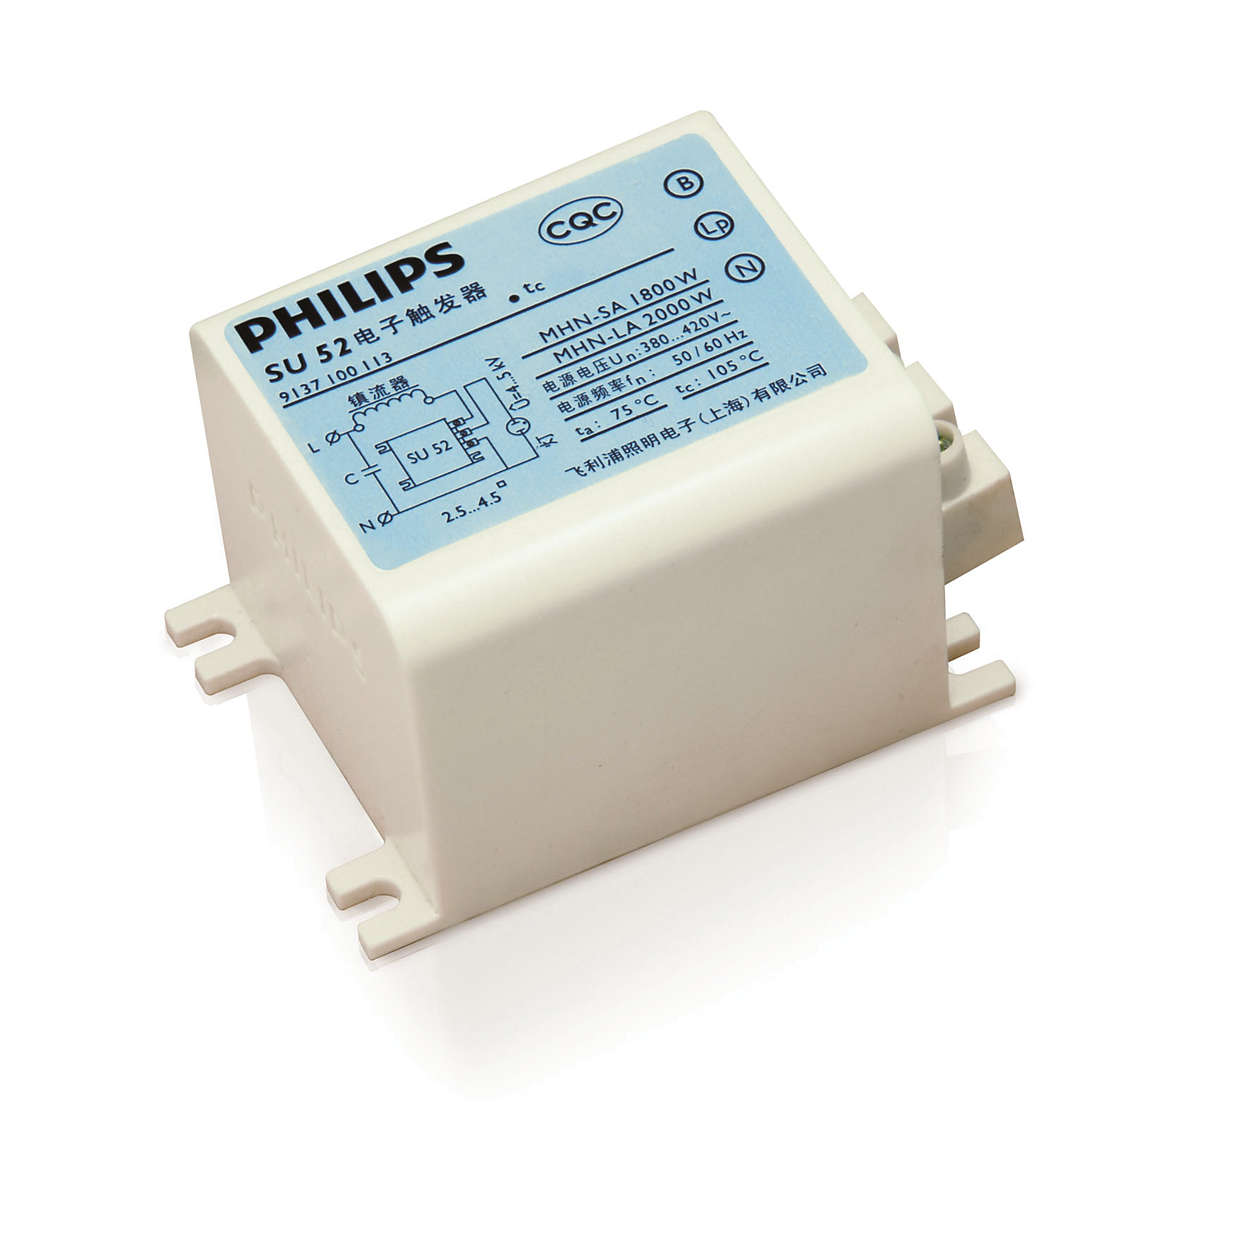 Electronic series ignitor for HID lamp circuits